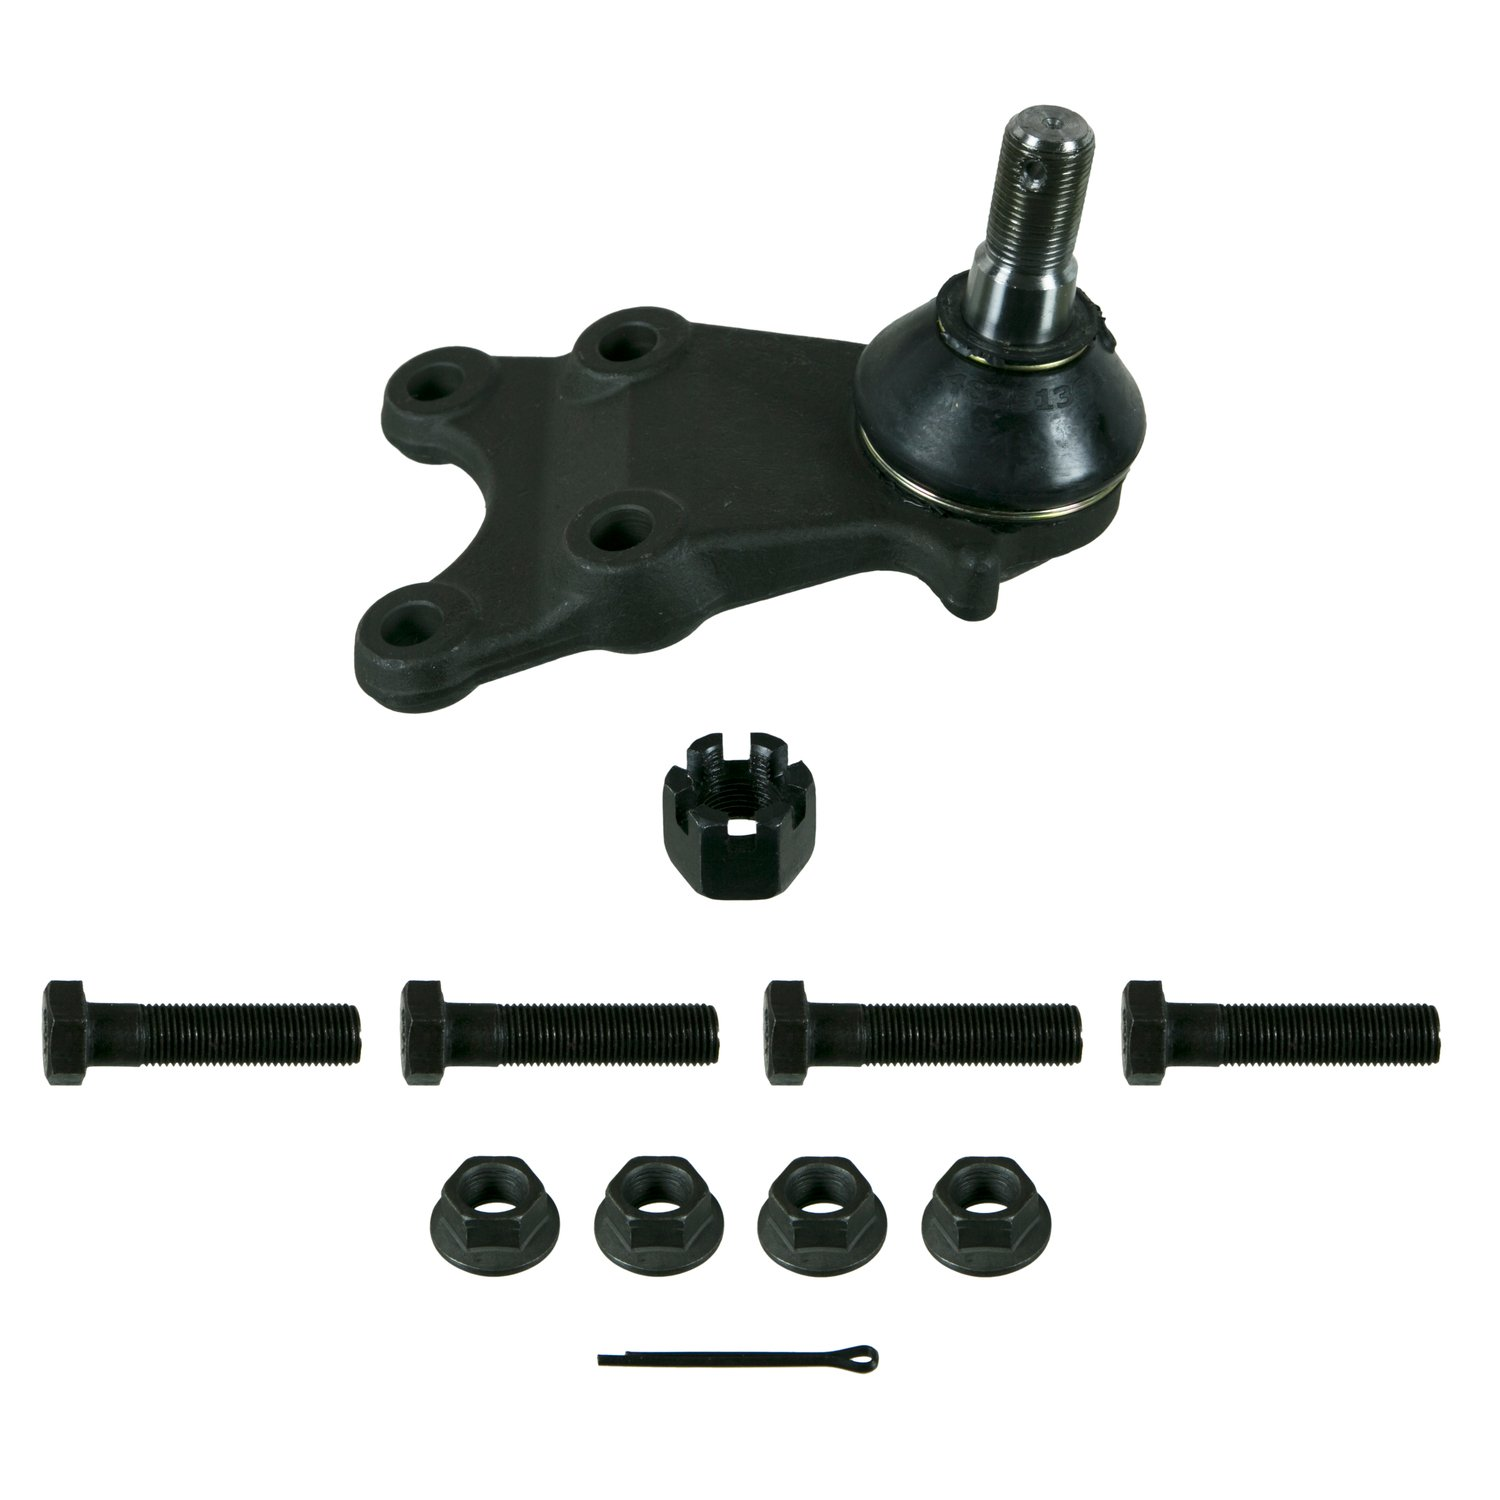 1997 Acura SLX Ball Joint